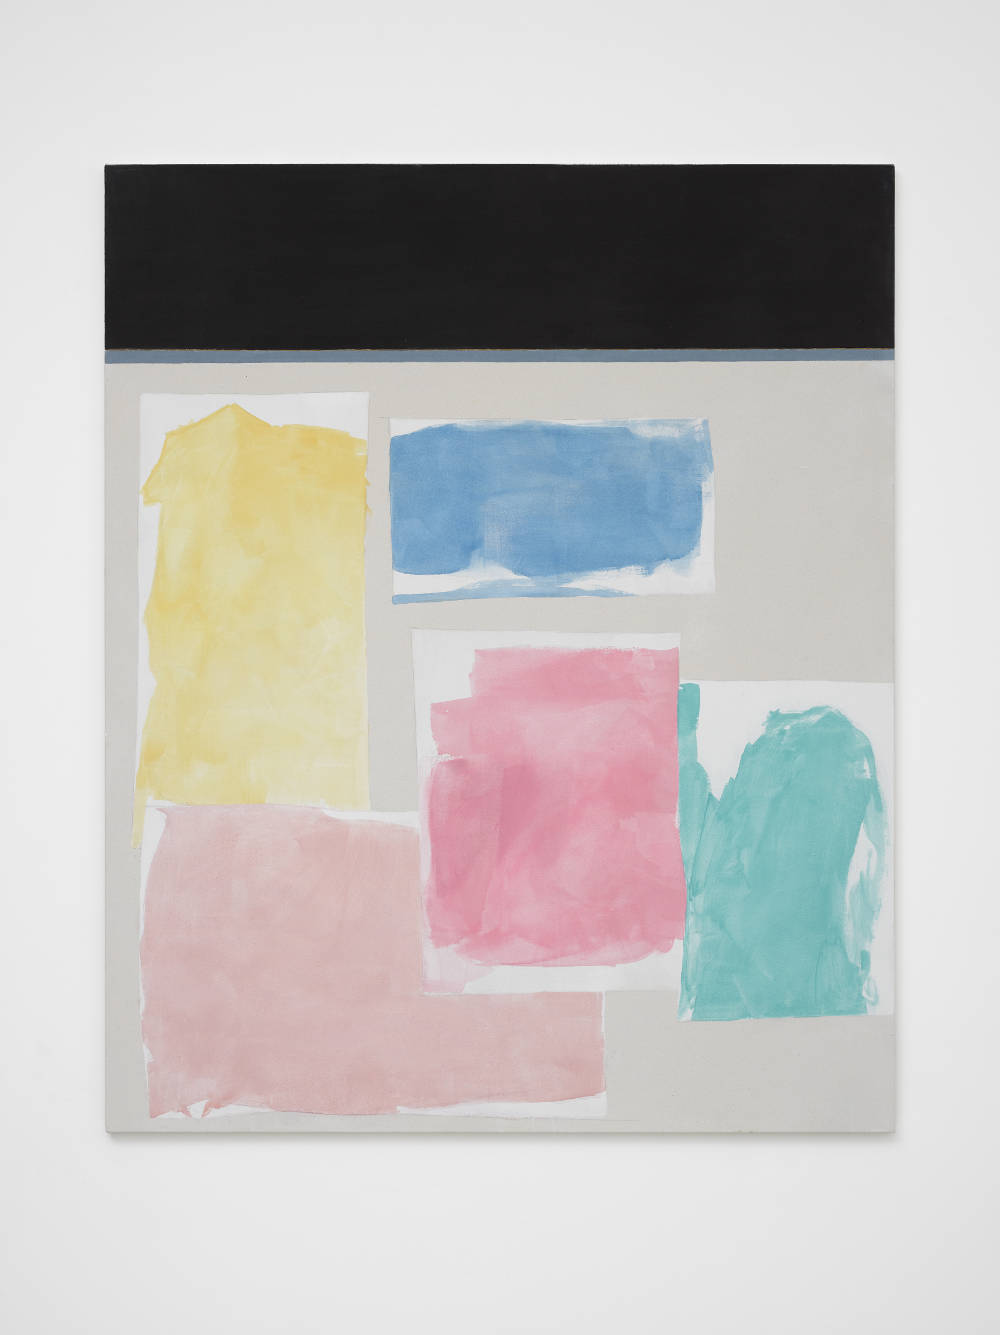 Peter Joseph, Black, Yellow, Blue, 2 pinks and Turquoise, 2016. Acrylic on cotton duck 54 x 44 inches (137.2 x 111.8 cm) © Peter Joseph; Courtesy Lisson Gallery. Photo by Jack Hems